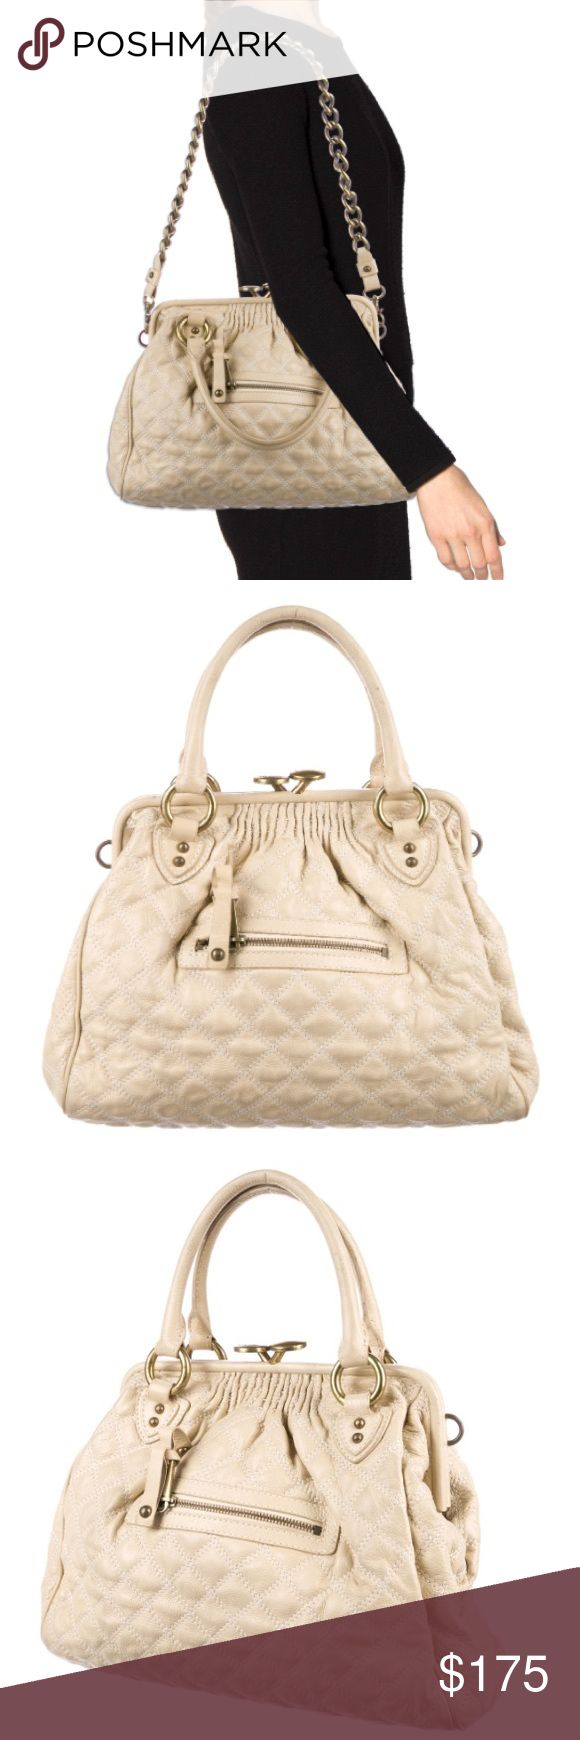 """Marc Jacobs Quilted Leather Stam Bag Purse Beige quilted leather Marc Jacobs Stam bag with brass hardware, dual rolled top handles, optional chain-link shoulder strap, protective feet at base, vermillion canvas lining, single pocket at interior wall with zip closure and kiss-lock closure at top.  100% Authentic Shoulder Strap Drop: 12"""" Handle Drop: 5"""" Height: 11"""" Width: 13"""" Depth: 5"""" Good condition, moderate markings on exterior leather; some tarnishing on the hardware Marc Jacobs Bags…"""